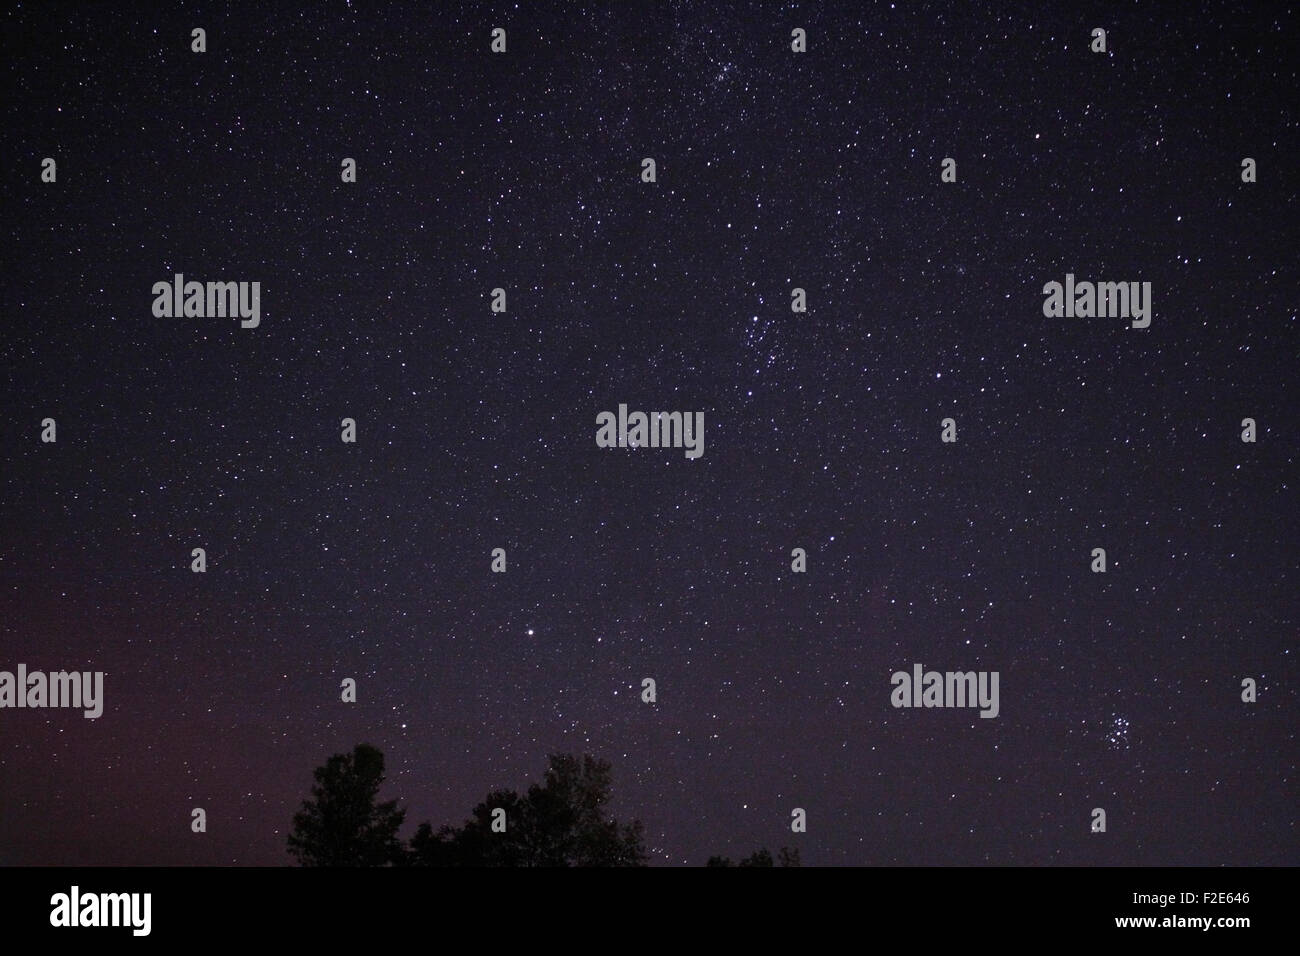 Night sky with stars and celestial objects including Constellation Perseus in the middle right night sky - Stock Image